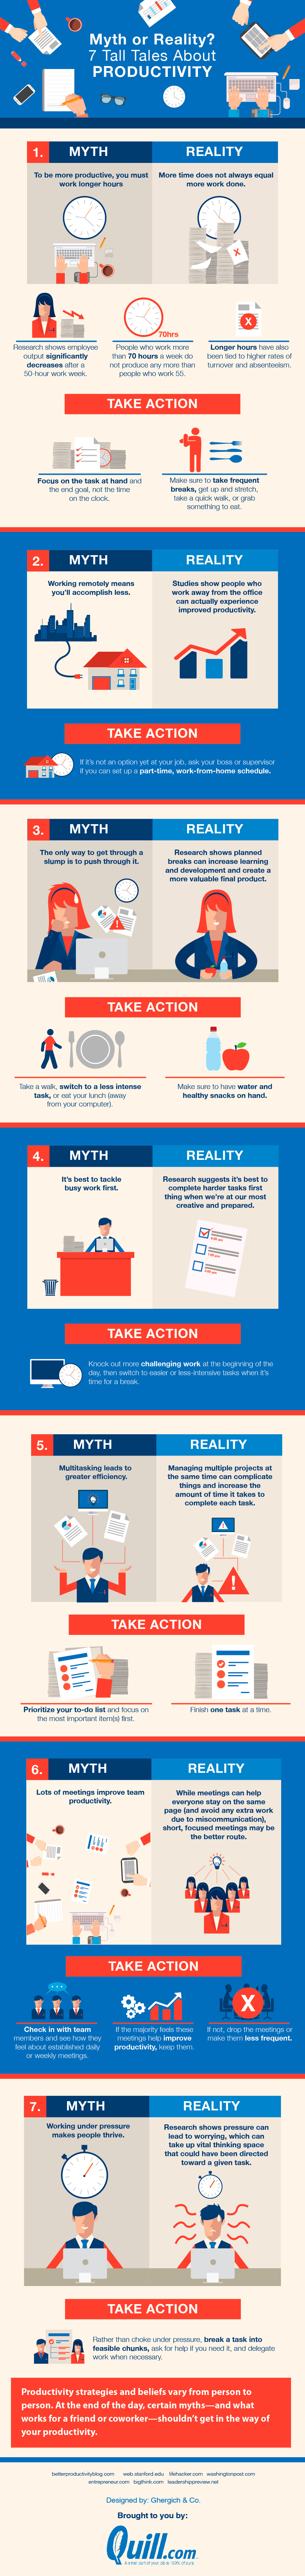 myth-or-reality-7-tall-tales-about-productivity_5682d27a33cf0